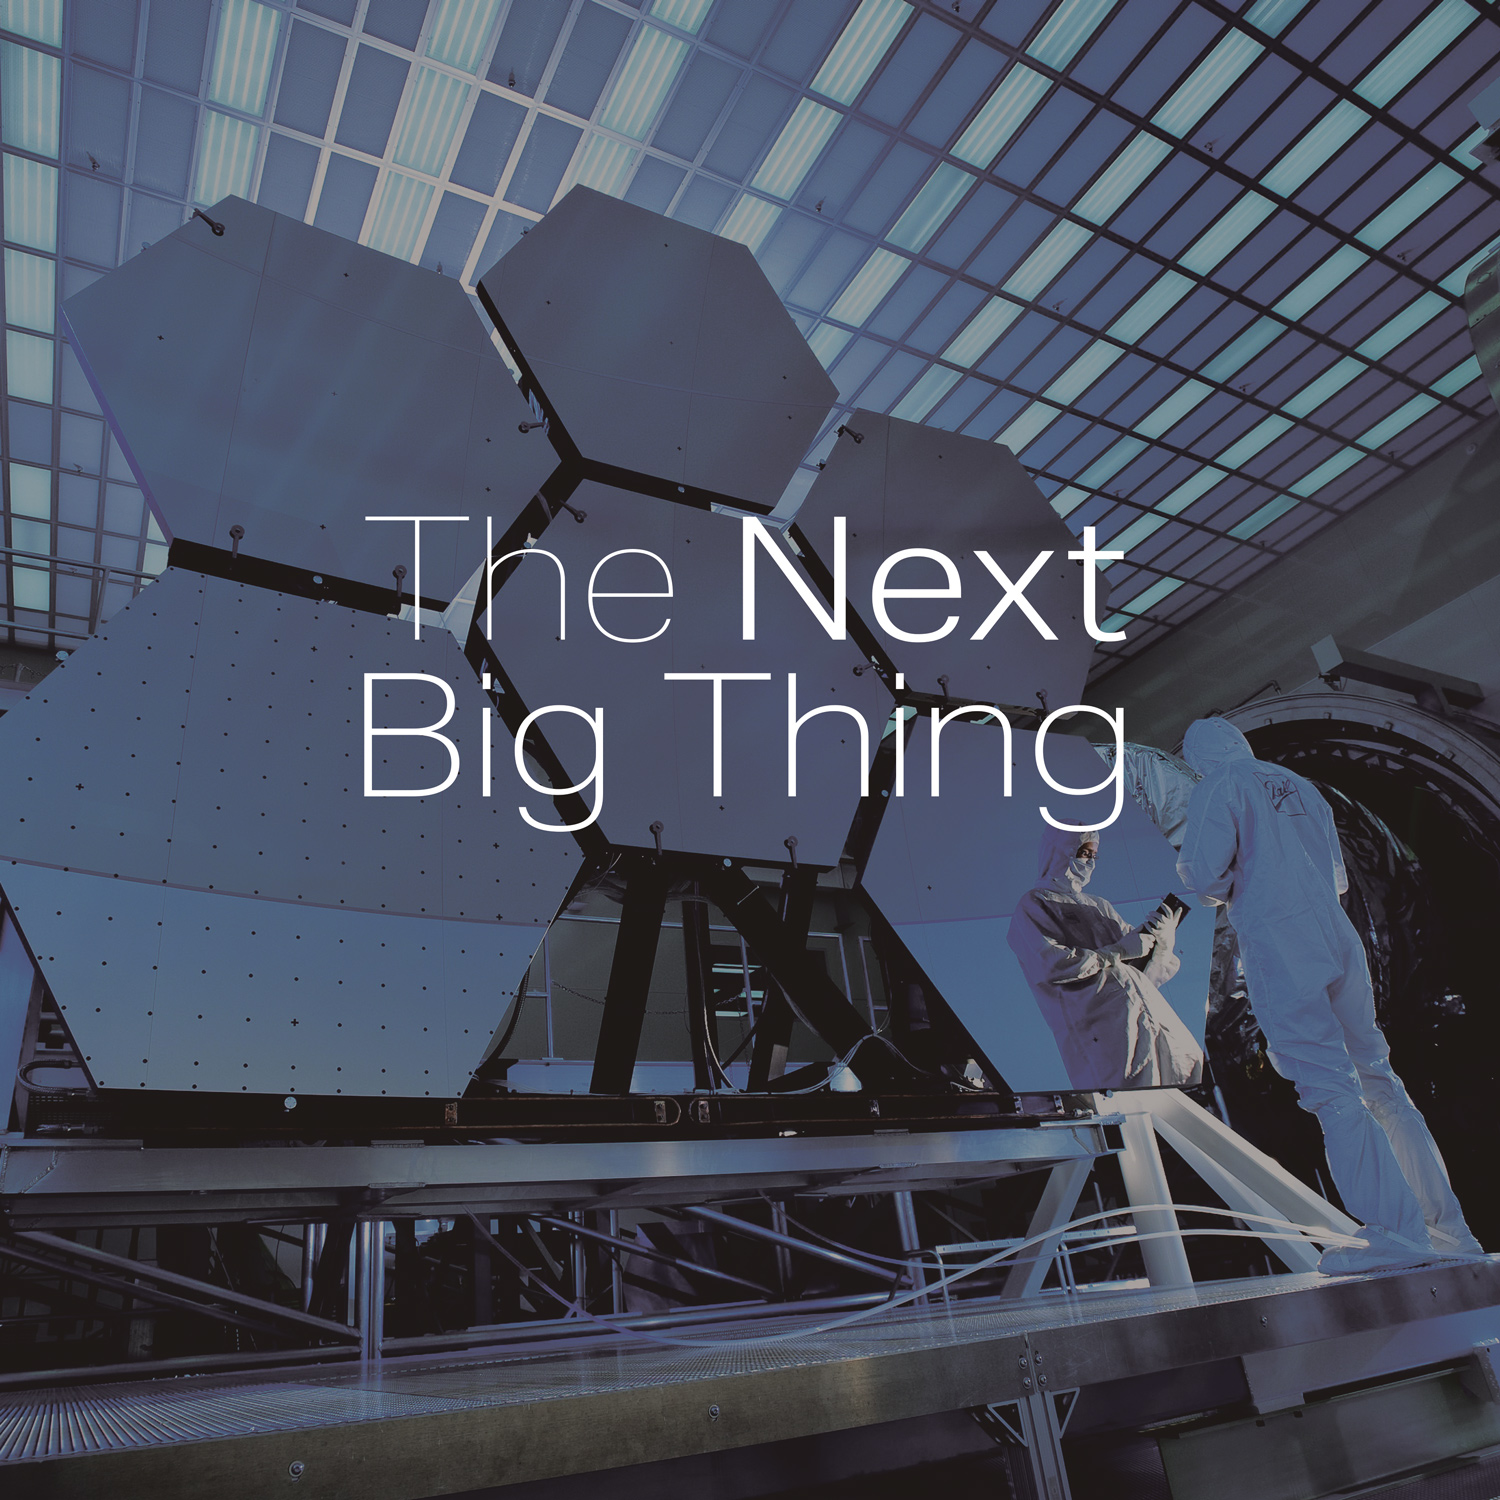 Look no further. - The Next Big Thing Is Here!